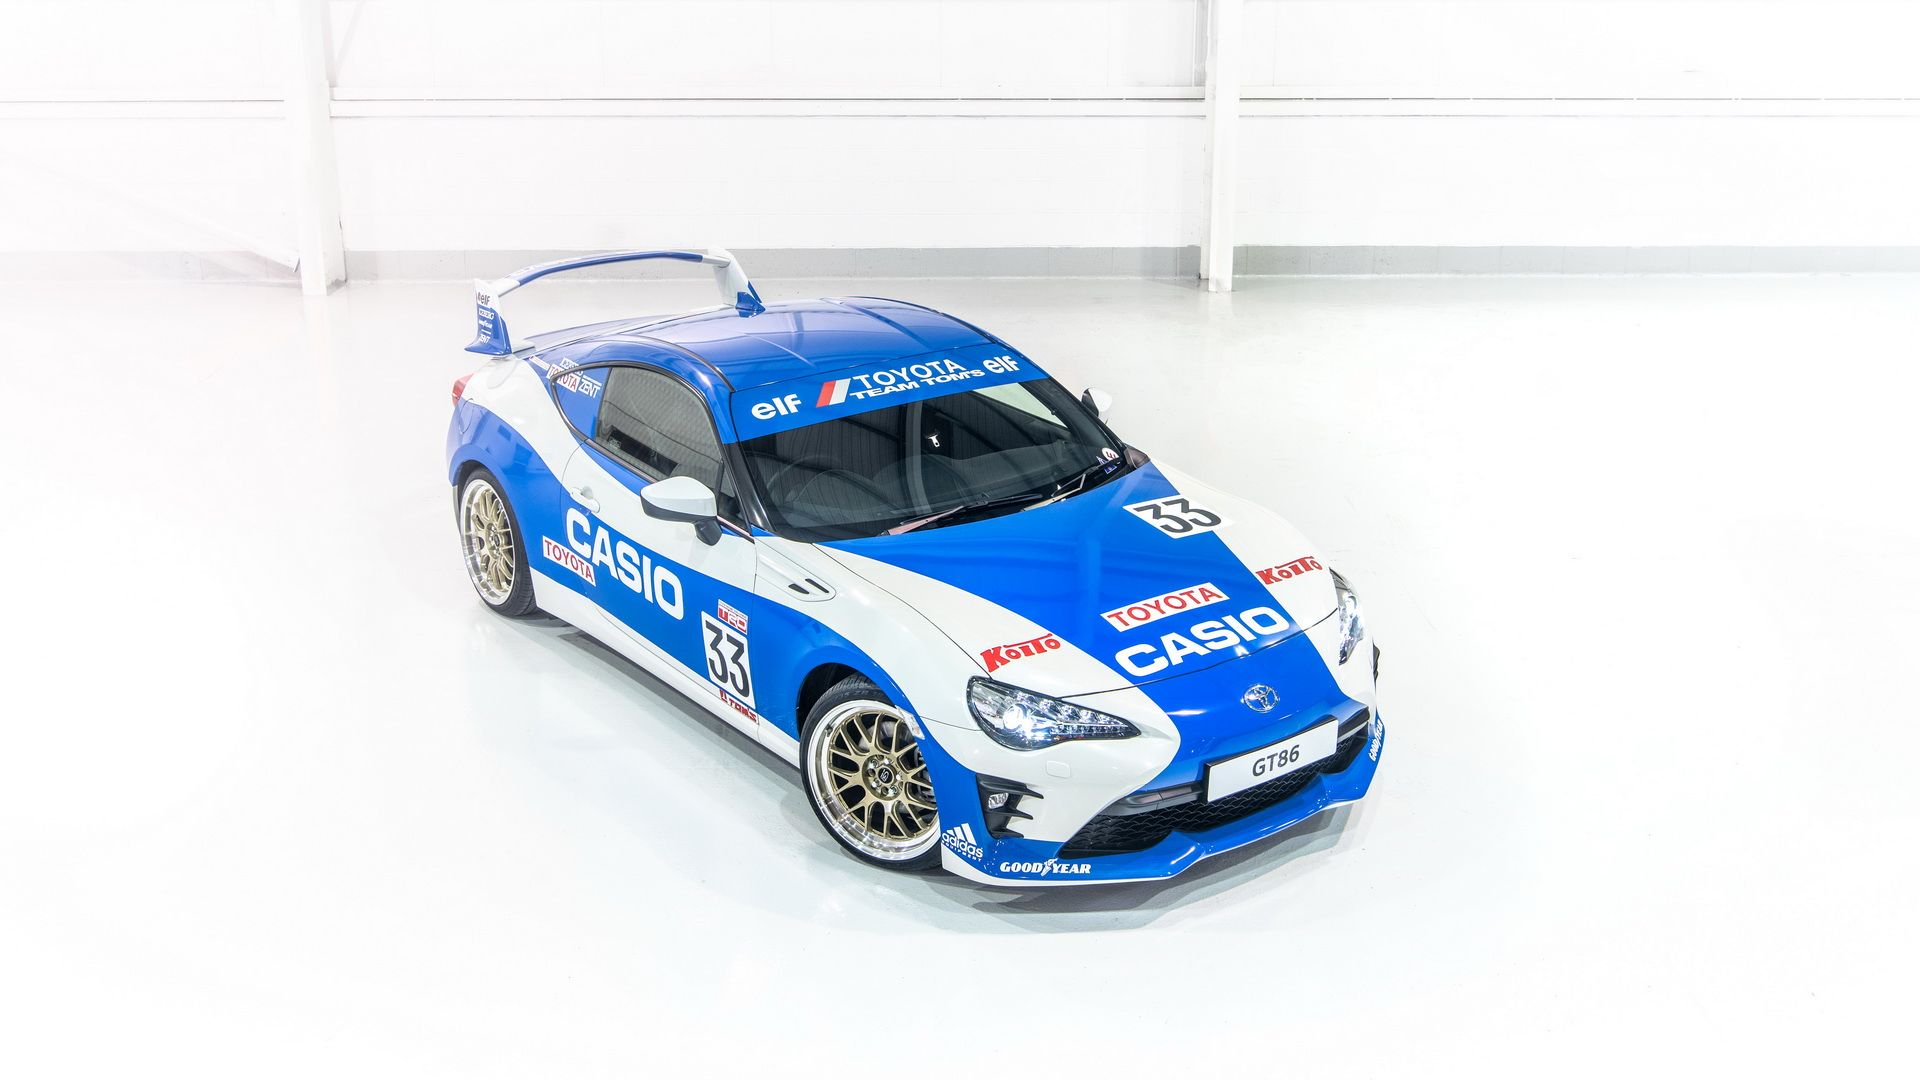 toyota-gt86-heritage-livery-24-hours-of-le-mans-24